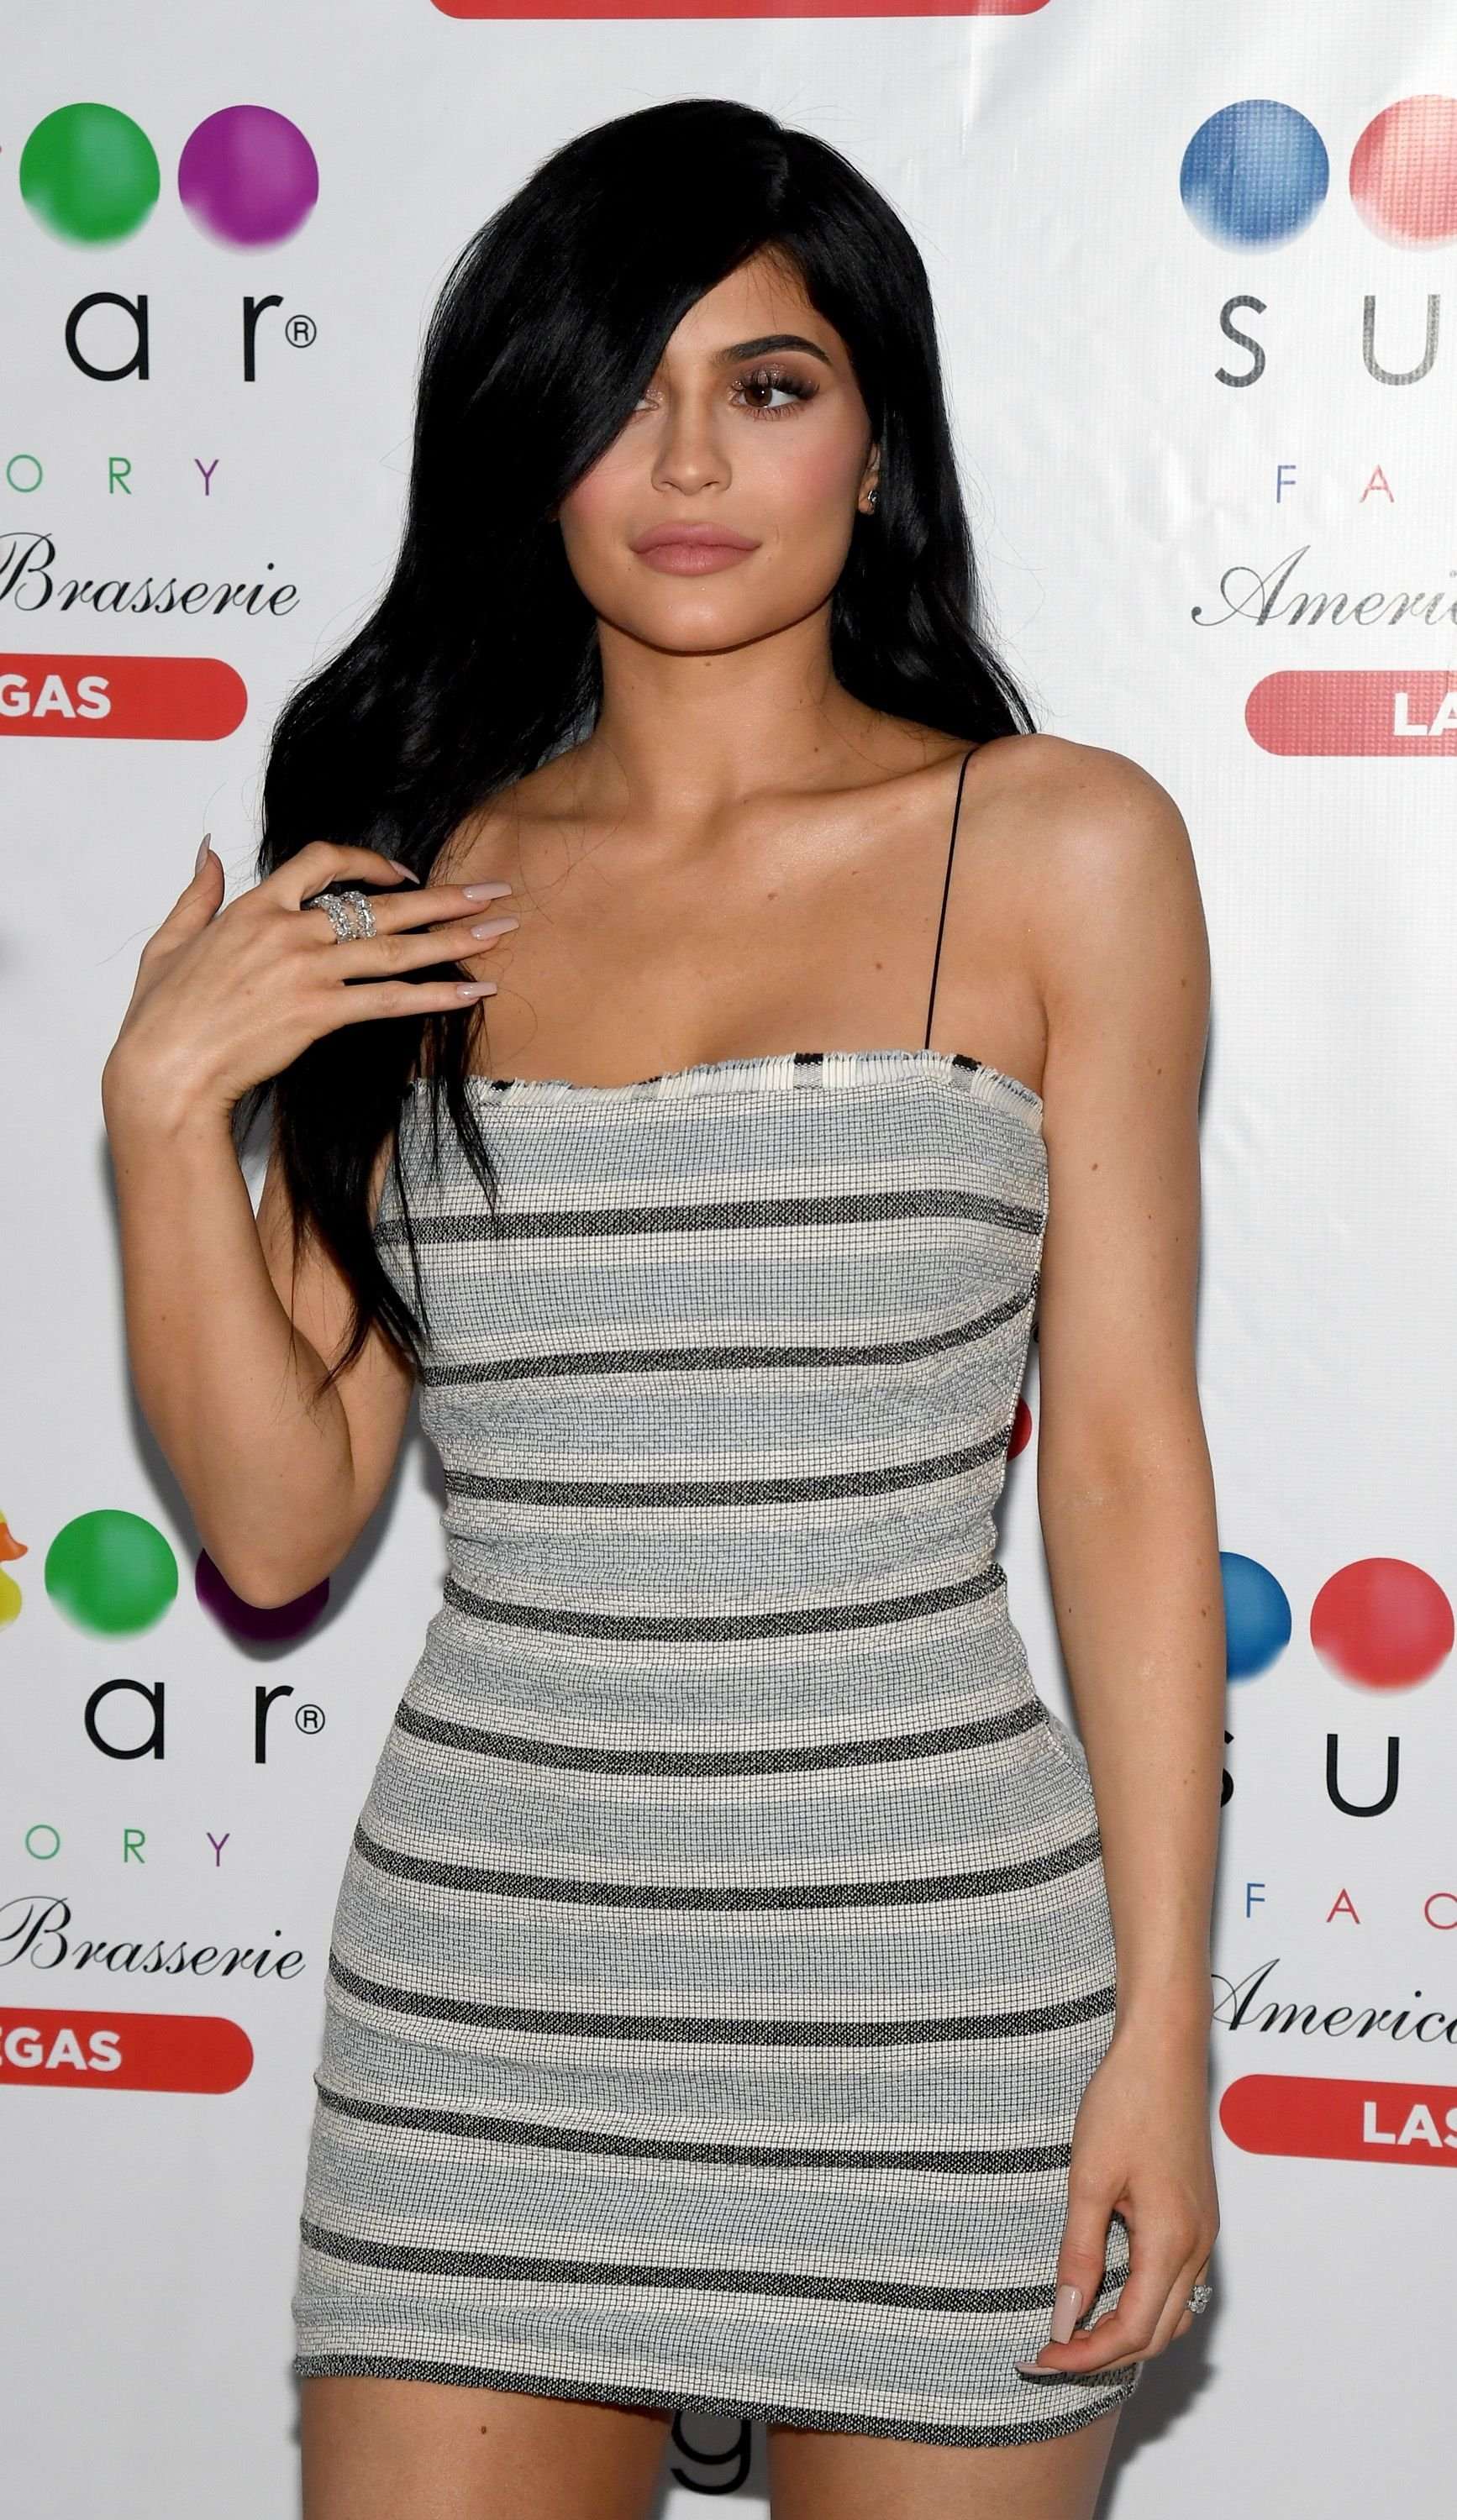 Kylie Jenner at the Sugar Factory American Brasserie at the Fashion Show mall on April 22, 2017 in Las Vegas, Nevada.   Source: Getty Images